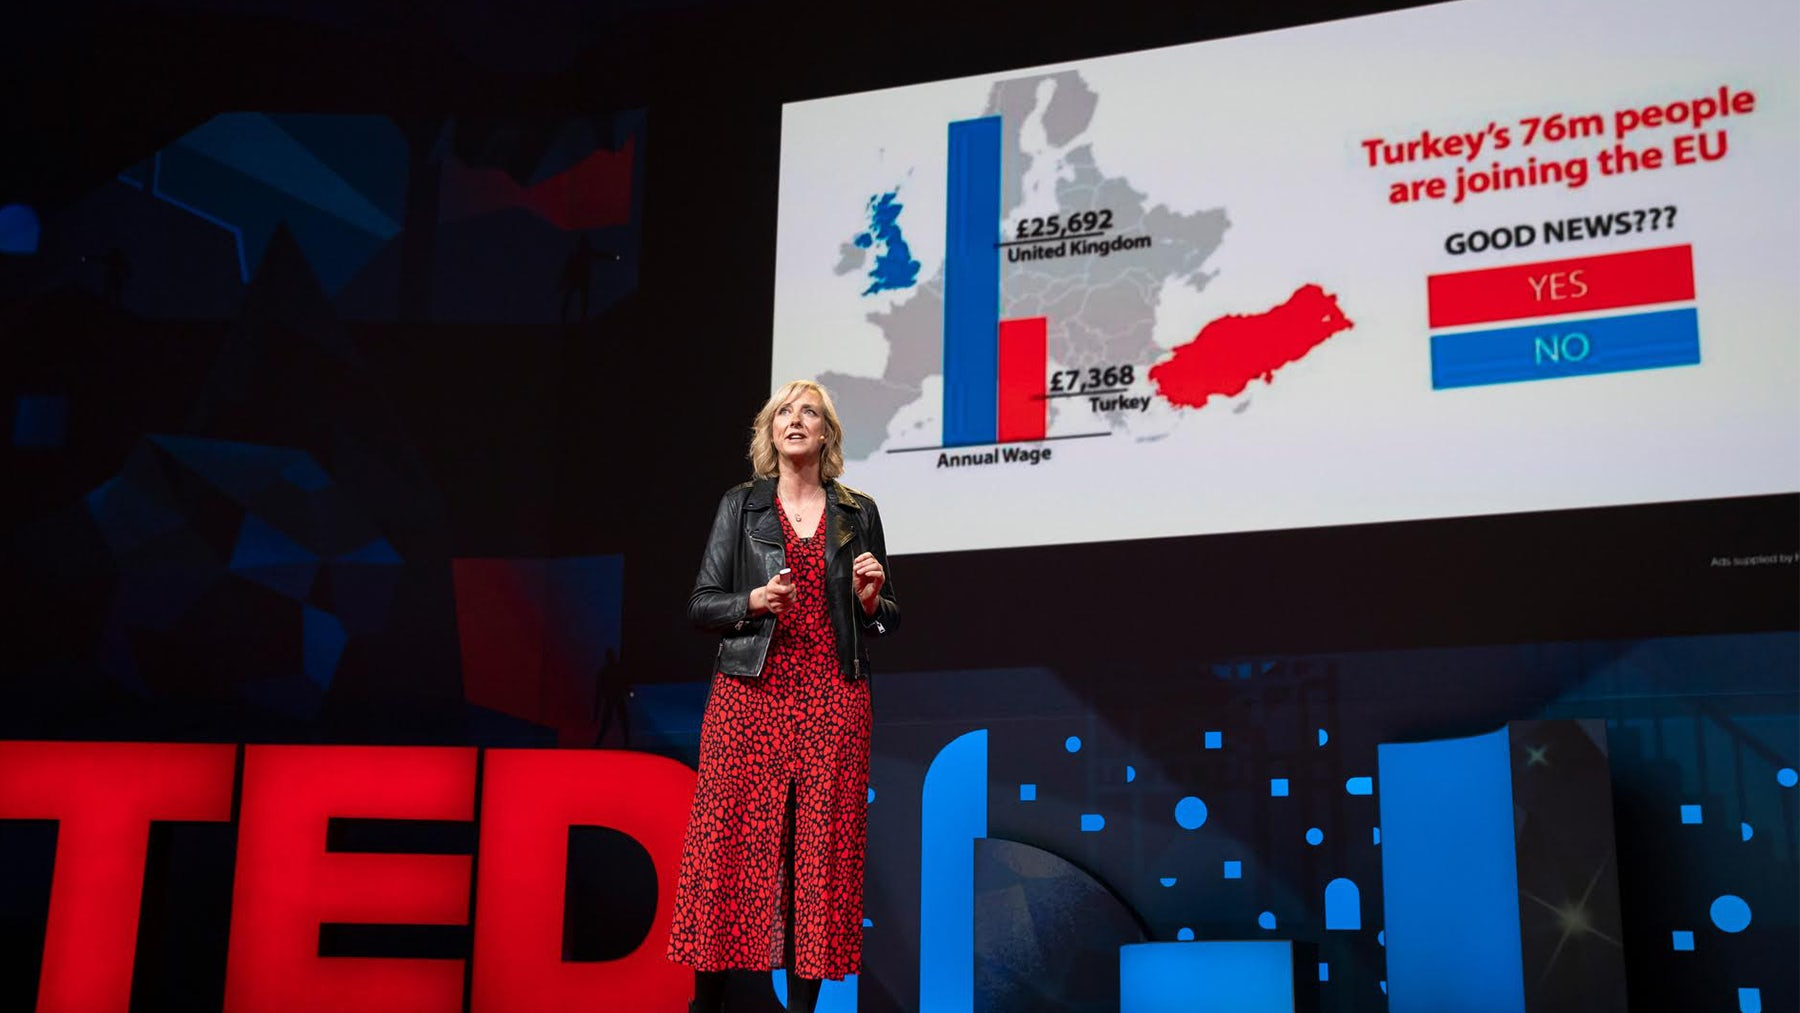 Carole Cadwalladr speaking at TED 2019 | Source: Courtesy of TED